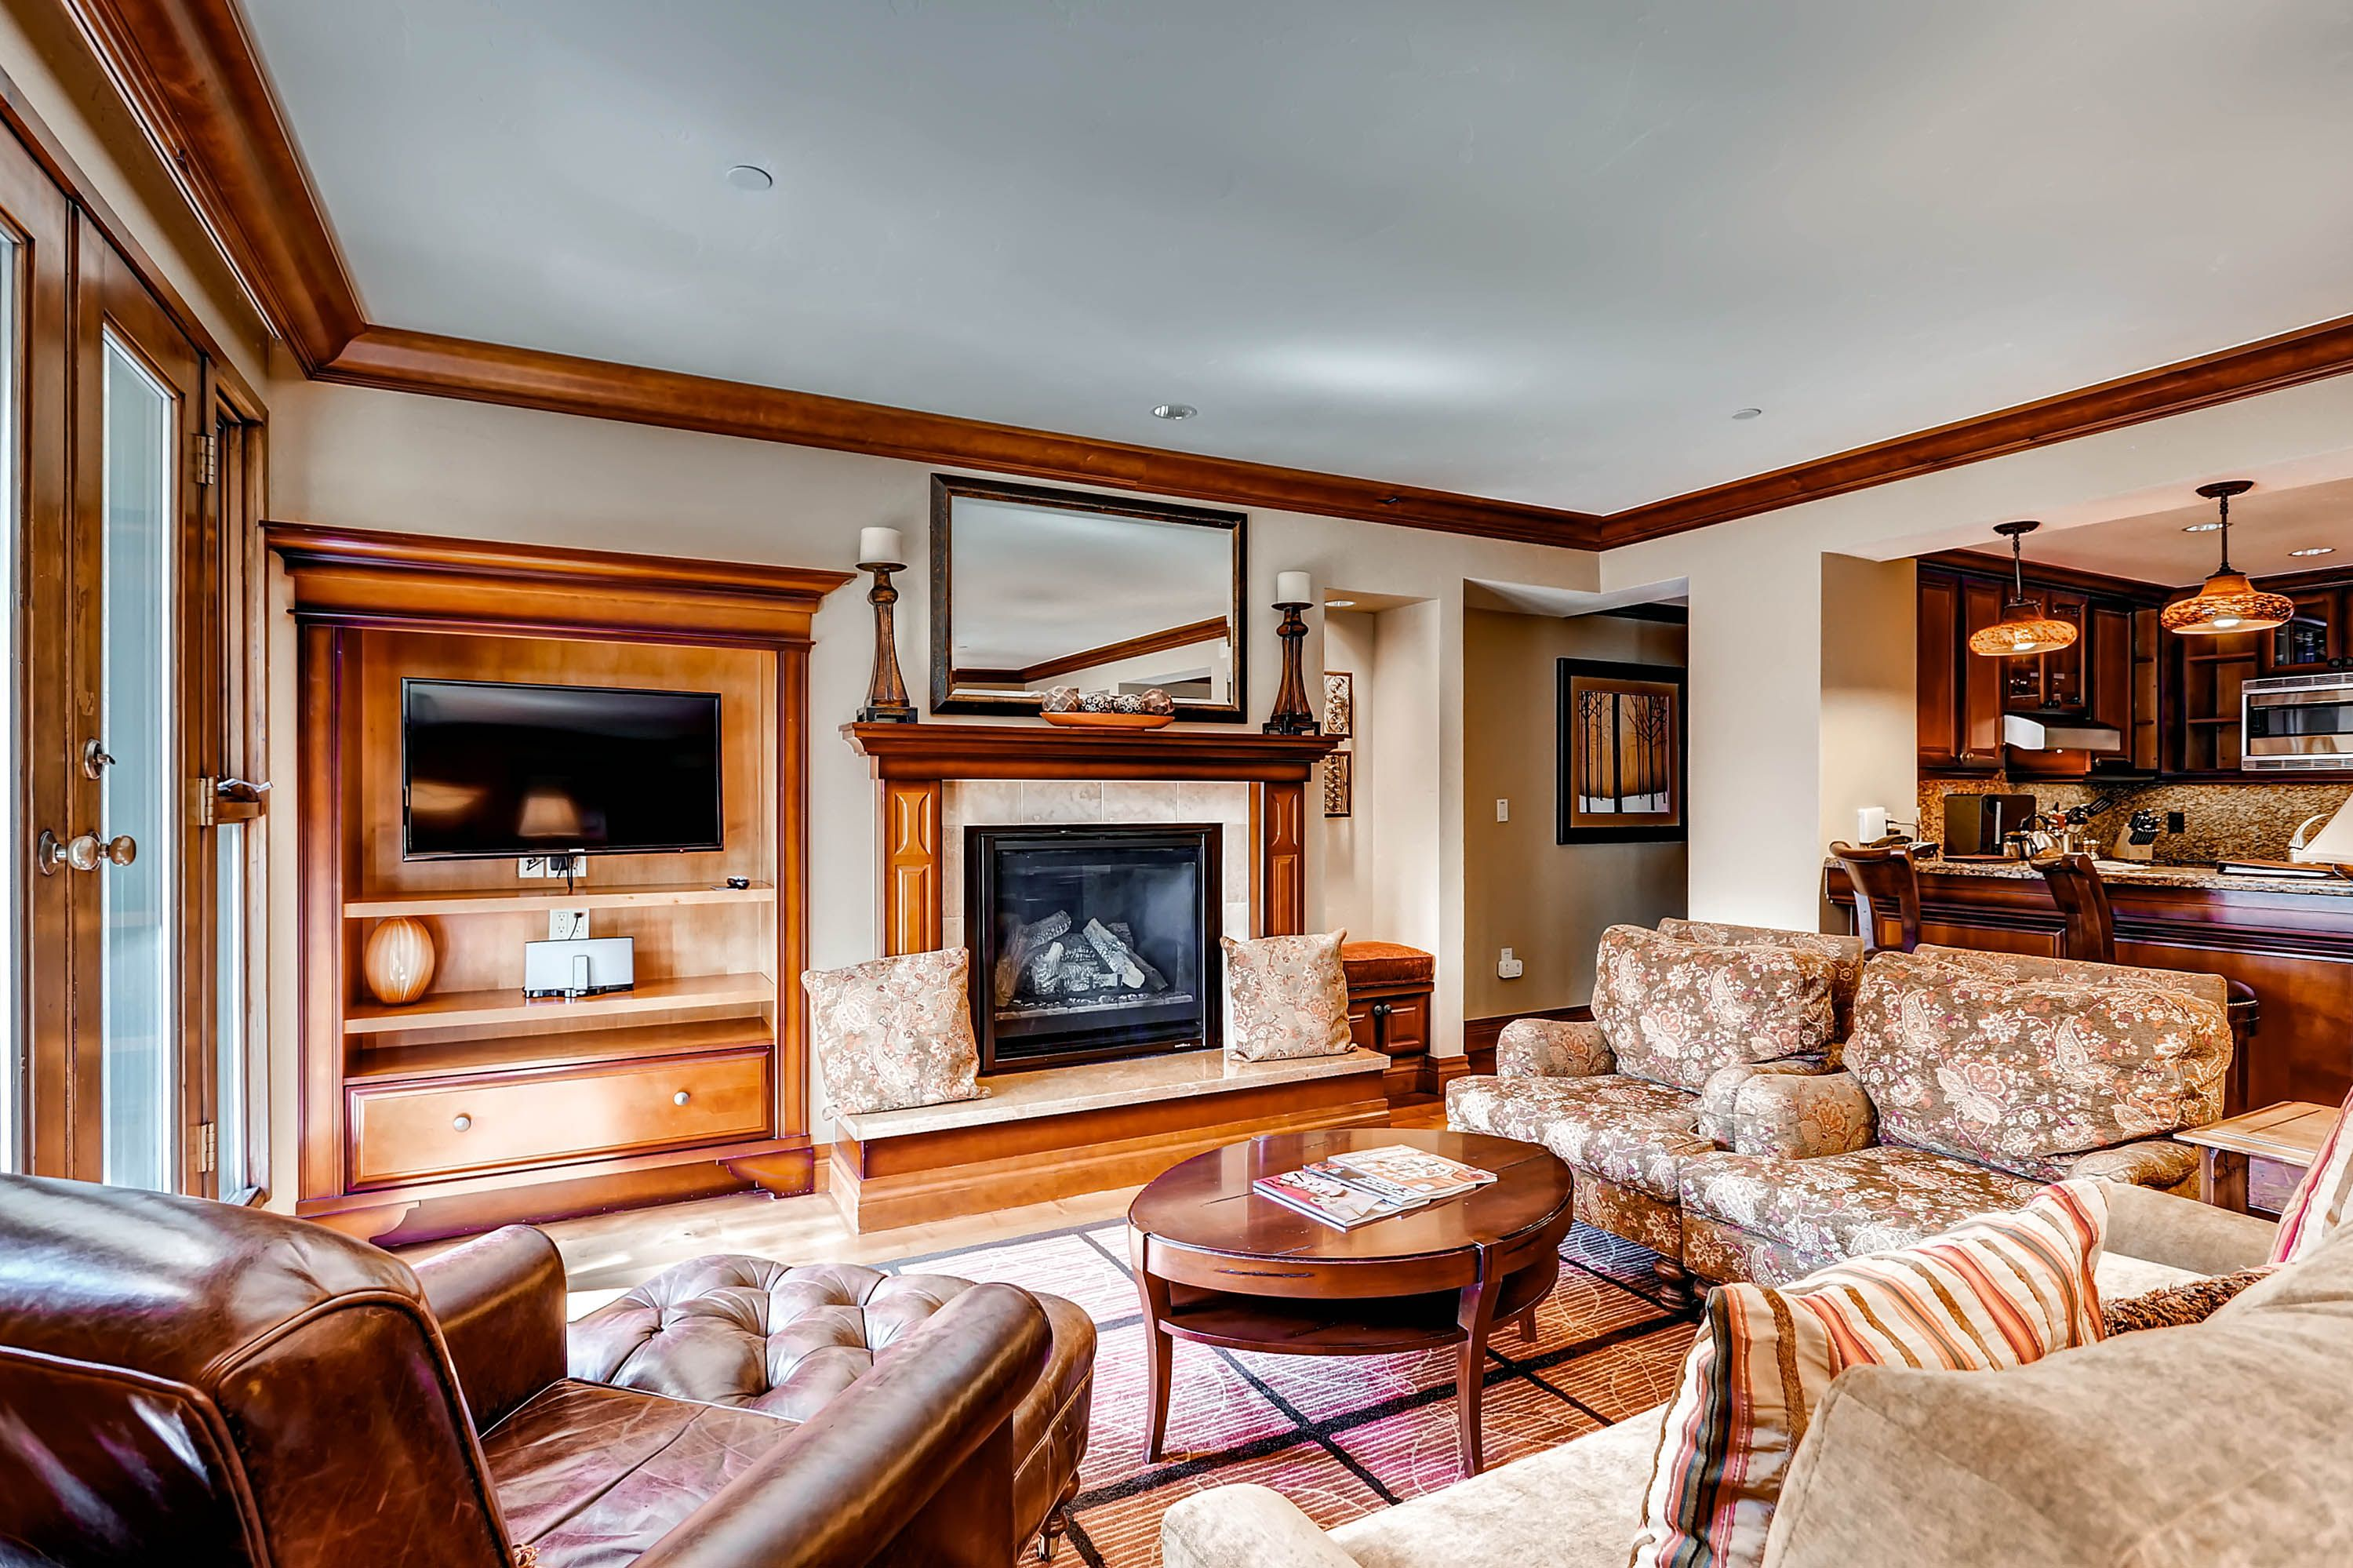 100 East Thomas Place # 3051 Beaver Creek, CO 81620